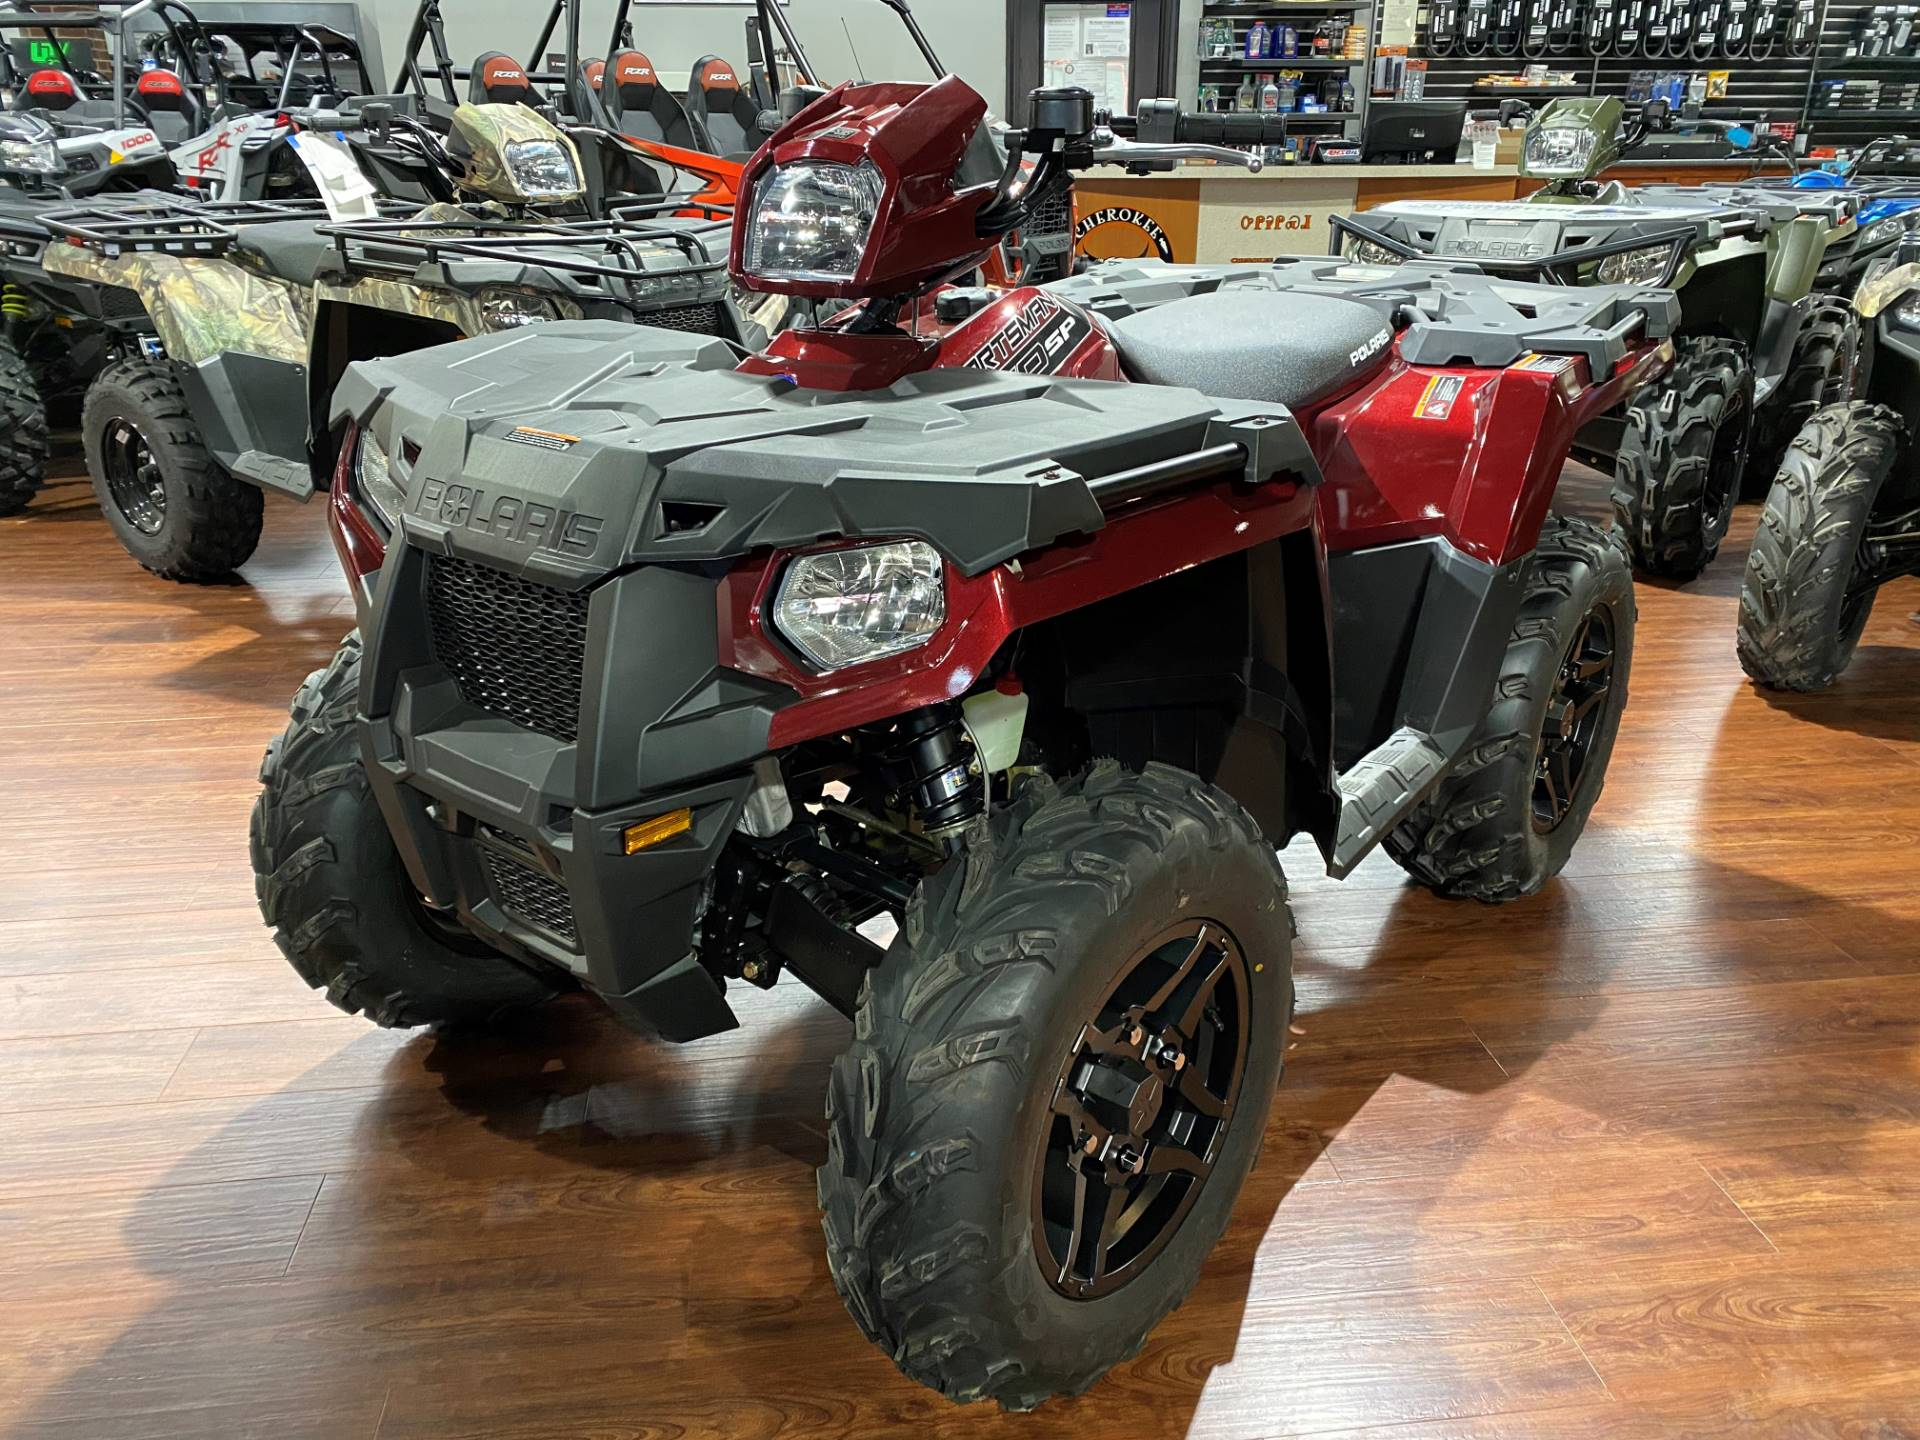 2019 Polaris Sportsman 570 SP - Photo 4